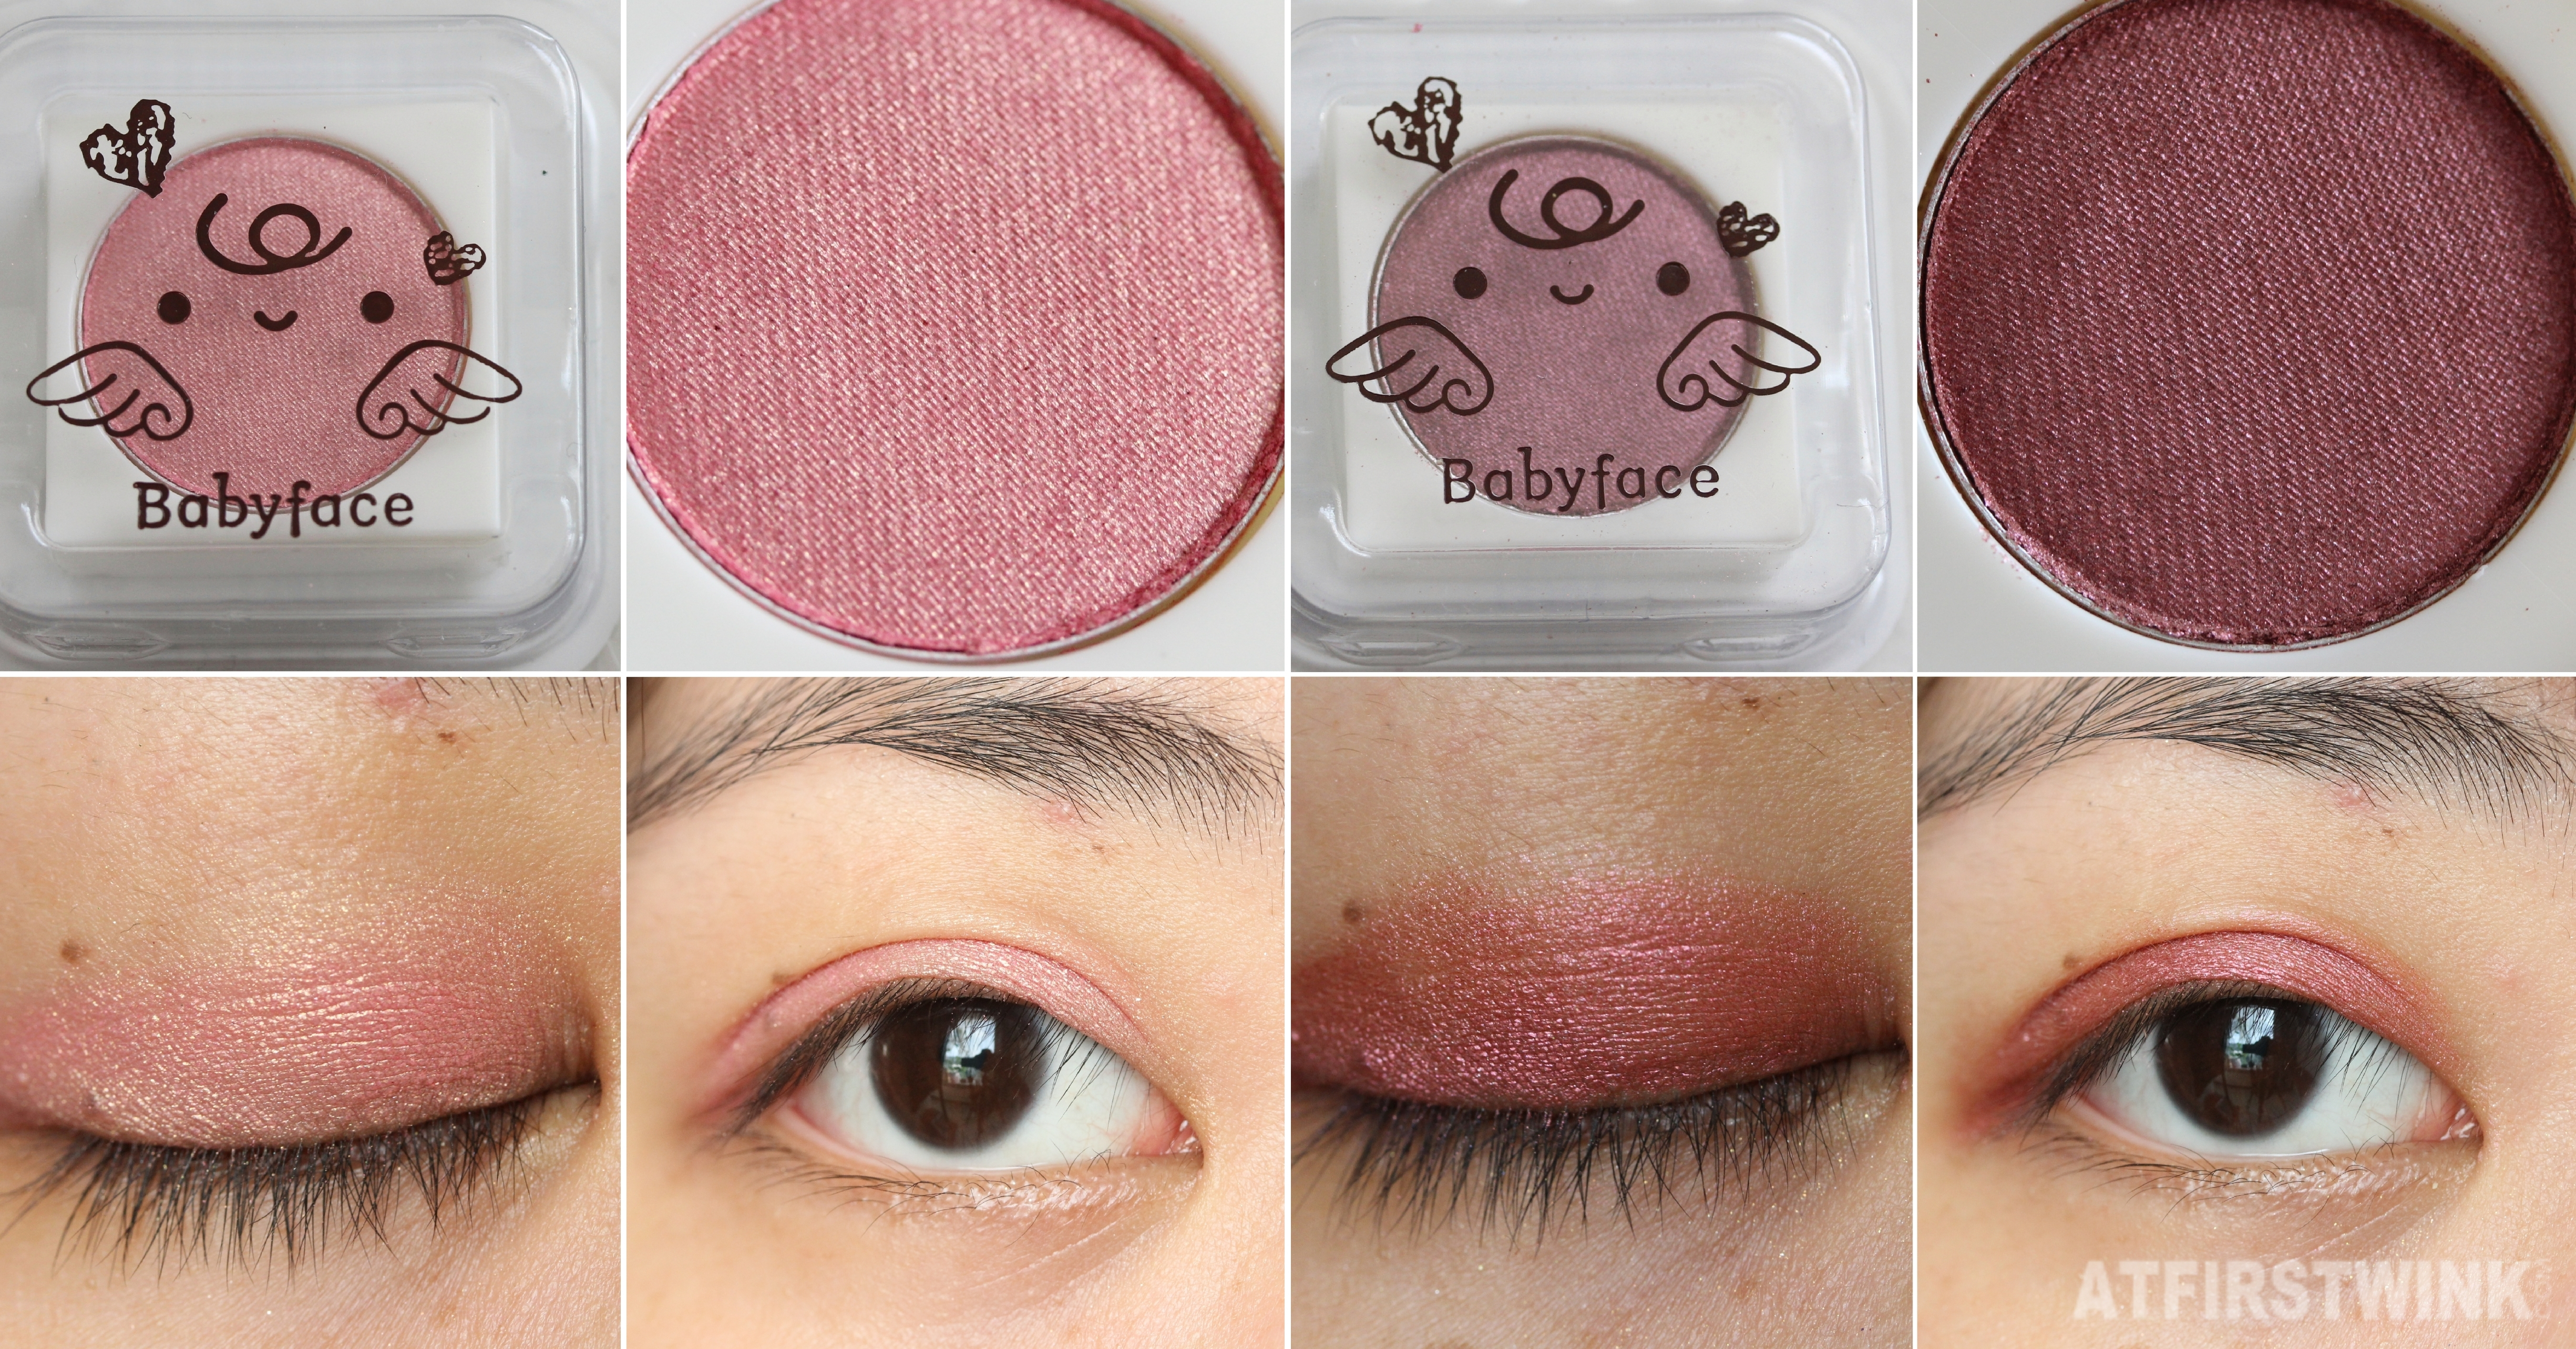 It's skin babyface mini love eyeshadow 09 - Lovely girls and 15 - Twilight eye swatches open and closed